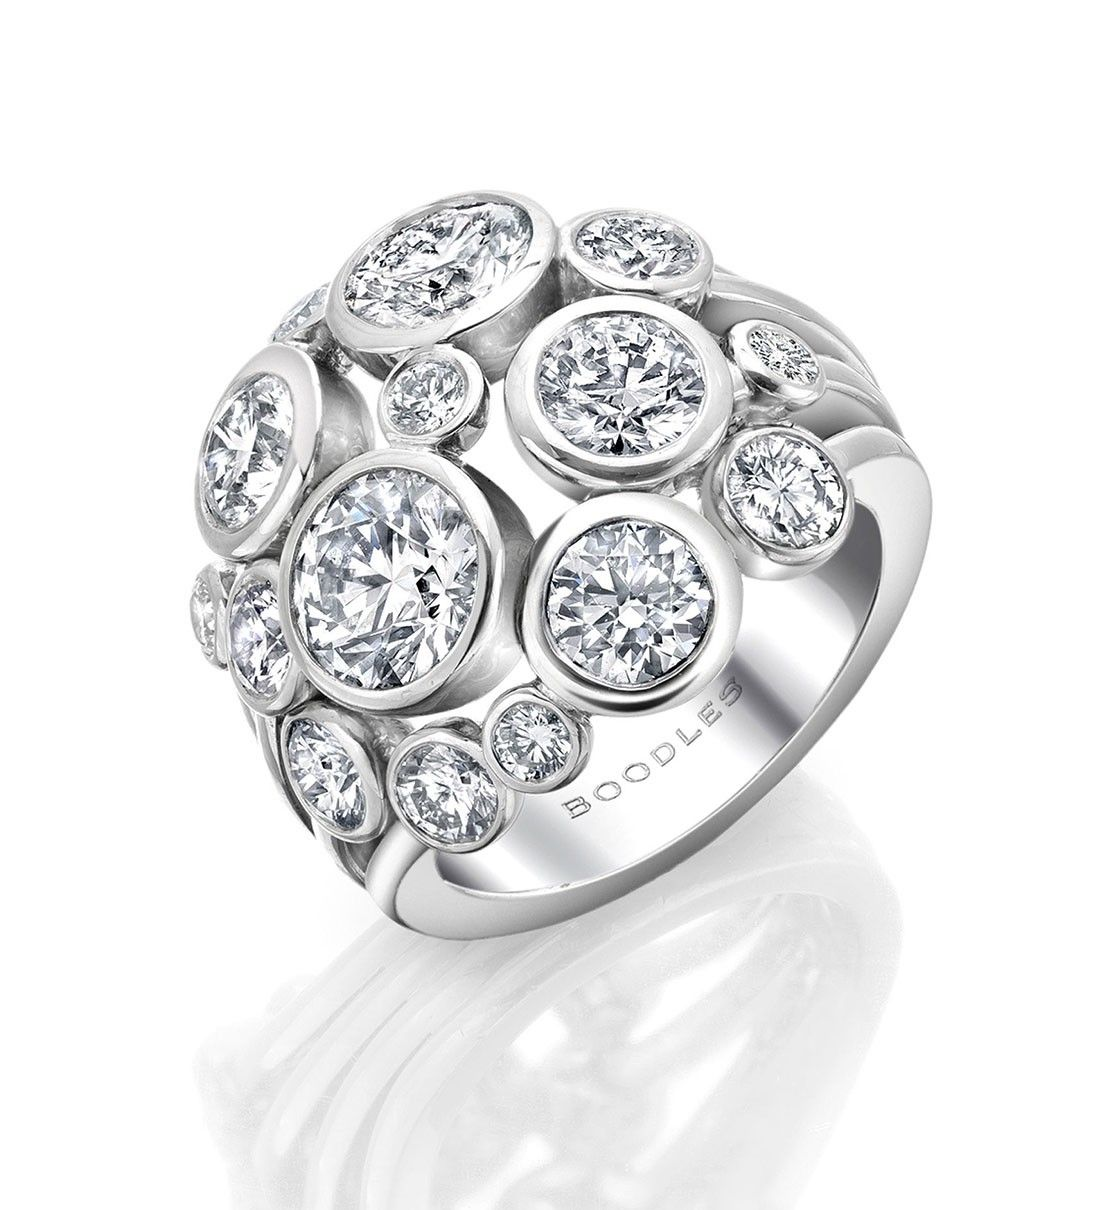 An Impressive, Contemporary Diamond Ring From Boodles' Raindance Collection  ~ 2 Main Diamonds Certificated